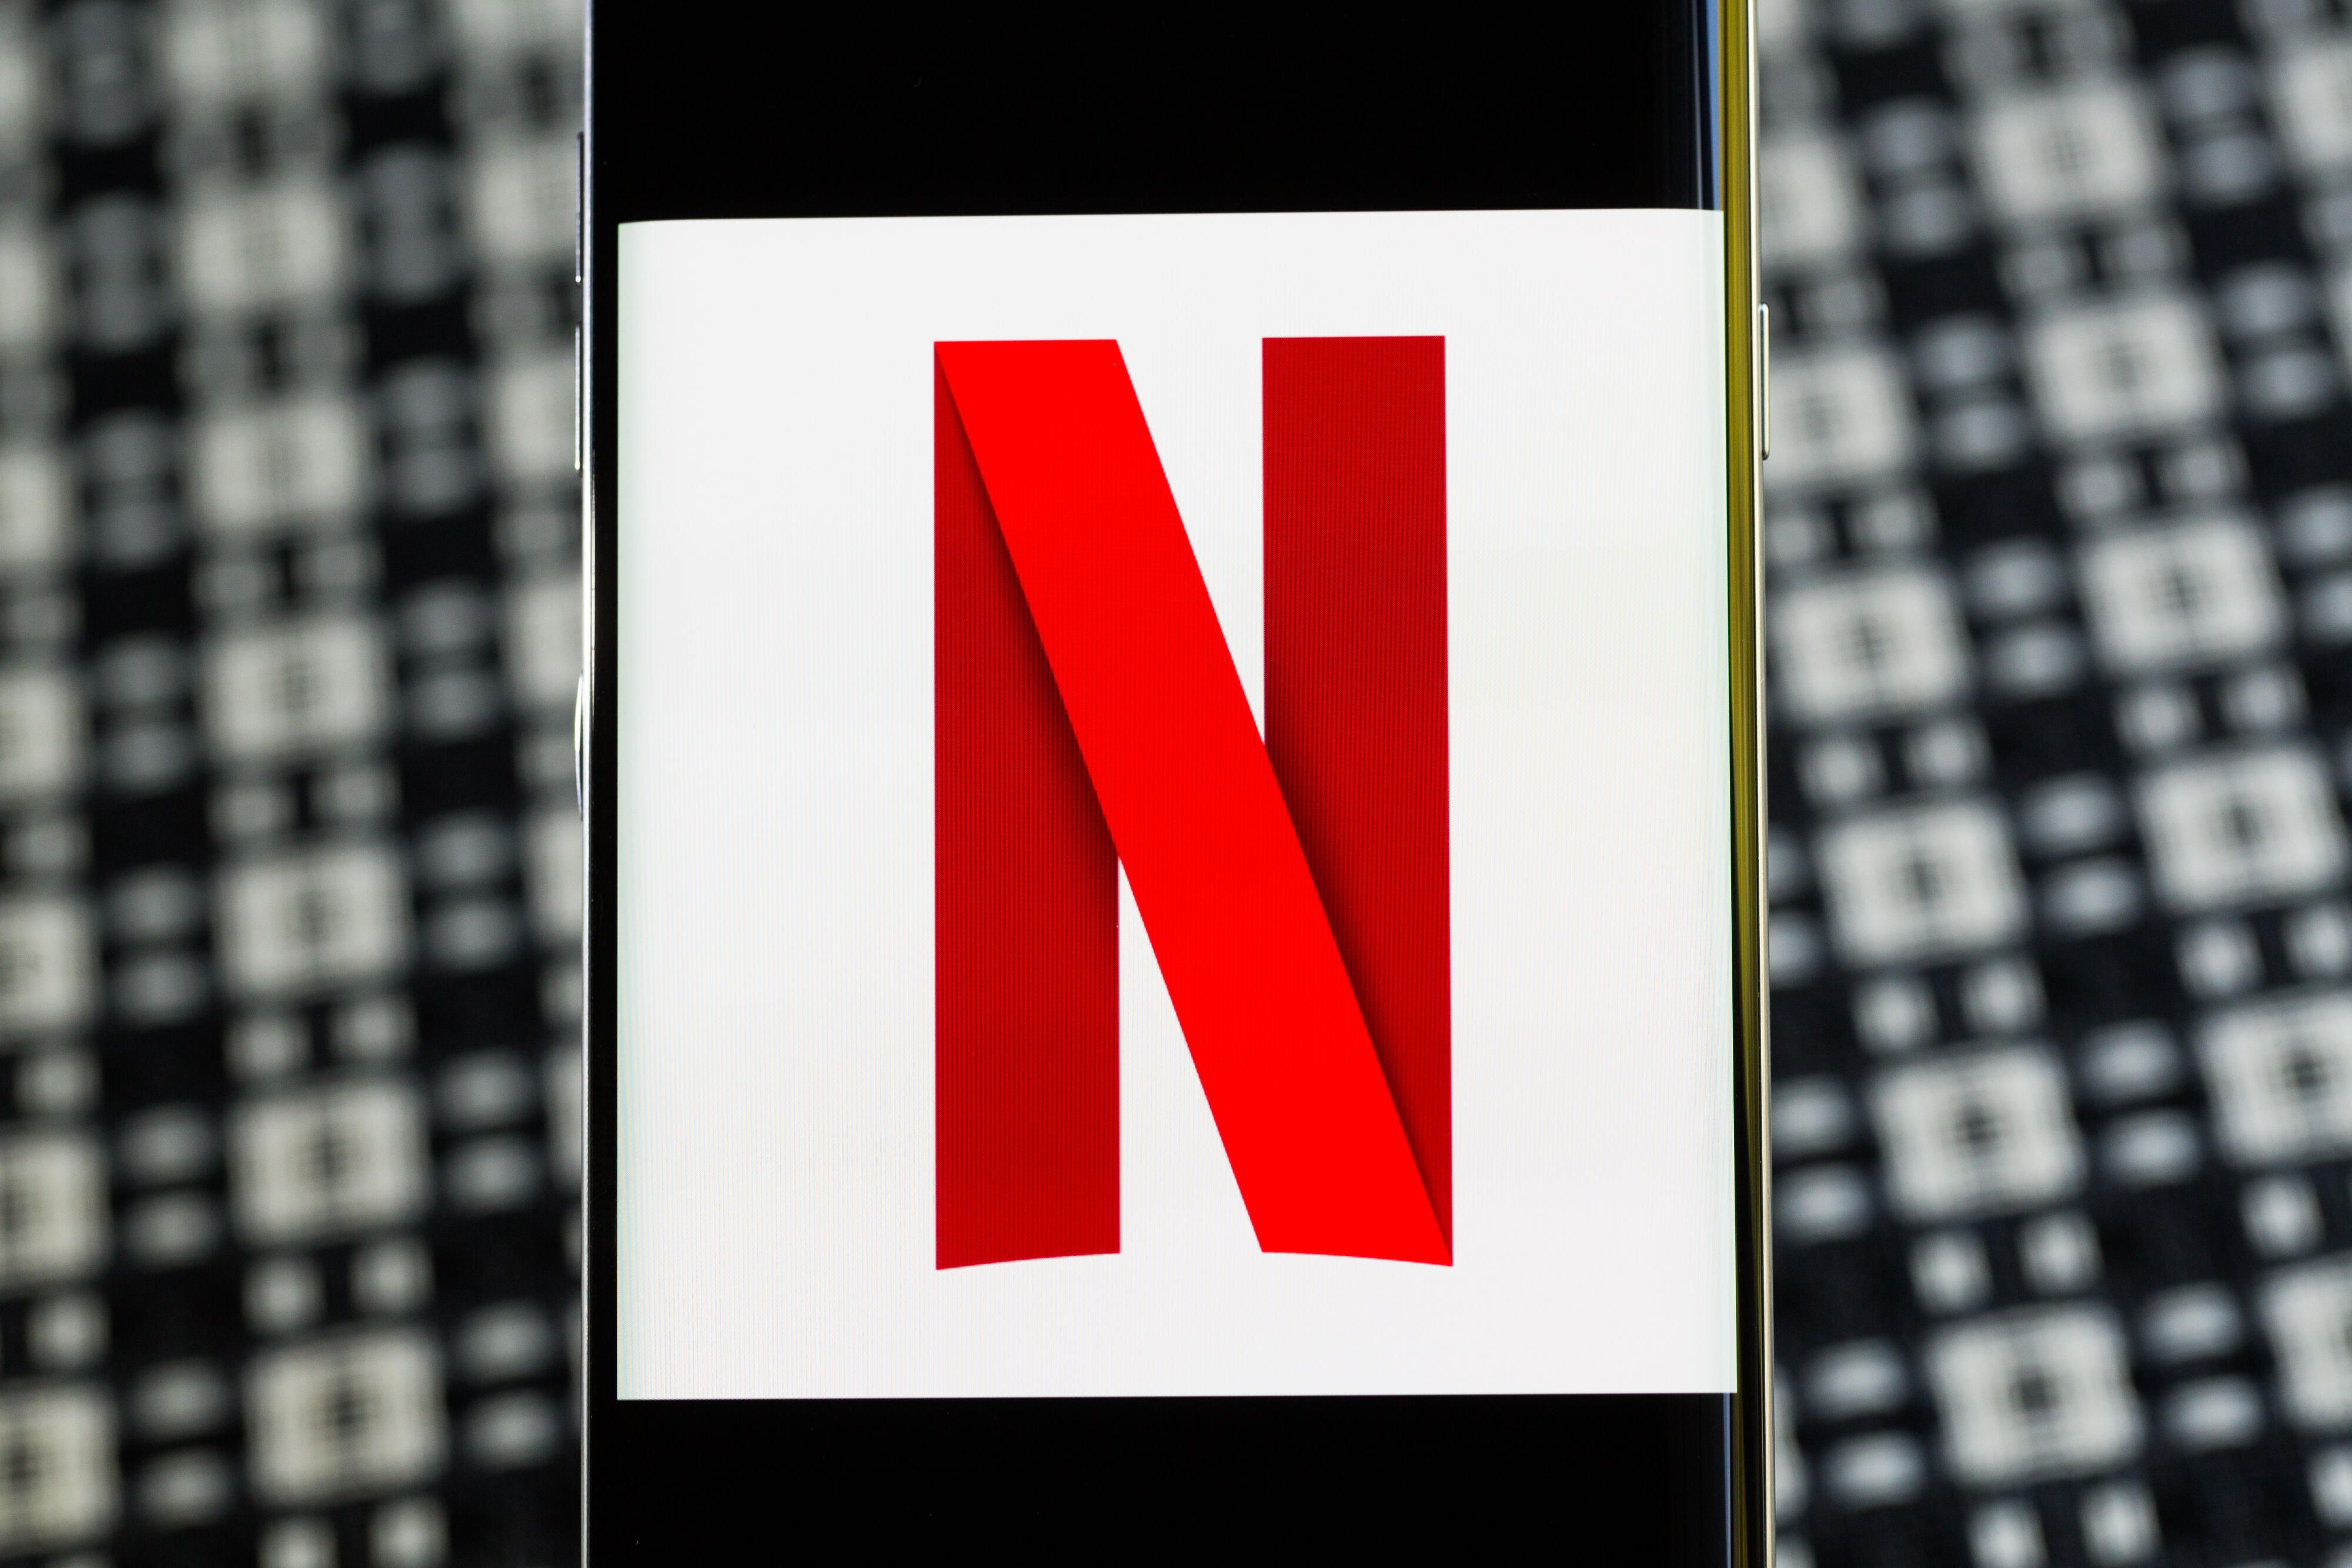 Netflix to dive into video games with ad-free mobile gaming at no extra cost